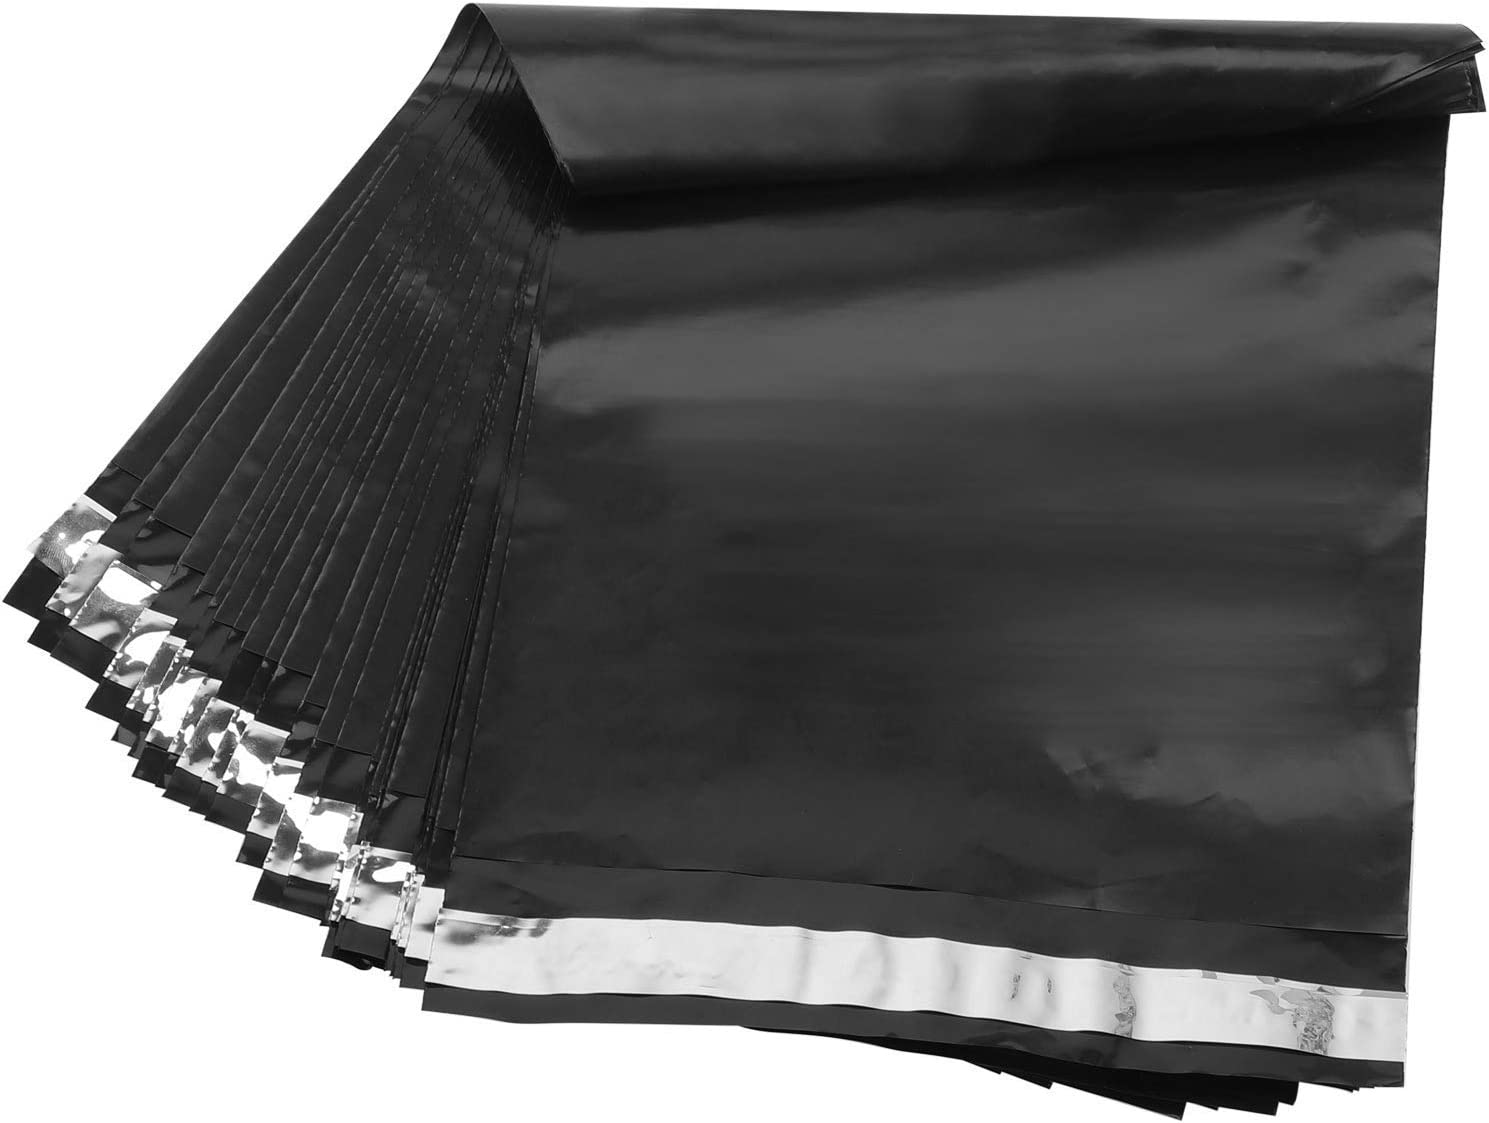 SUNN Black 12.5x15.5 Inch Safety and Courier shipping free shipping trust 100Pcs Wi Bags Postal Envelope Mailers